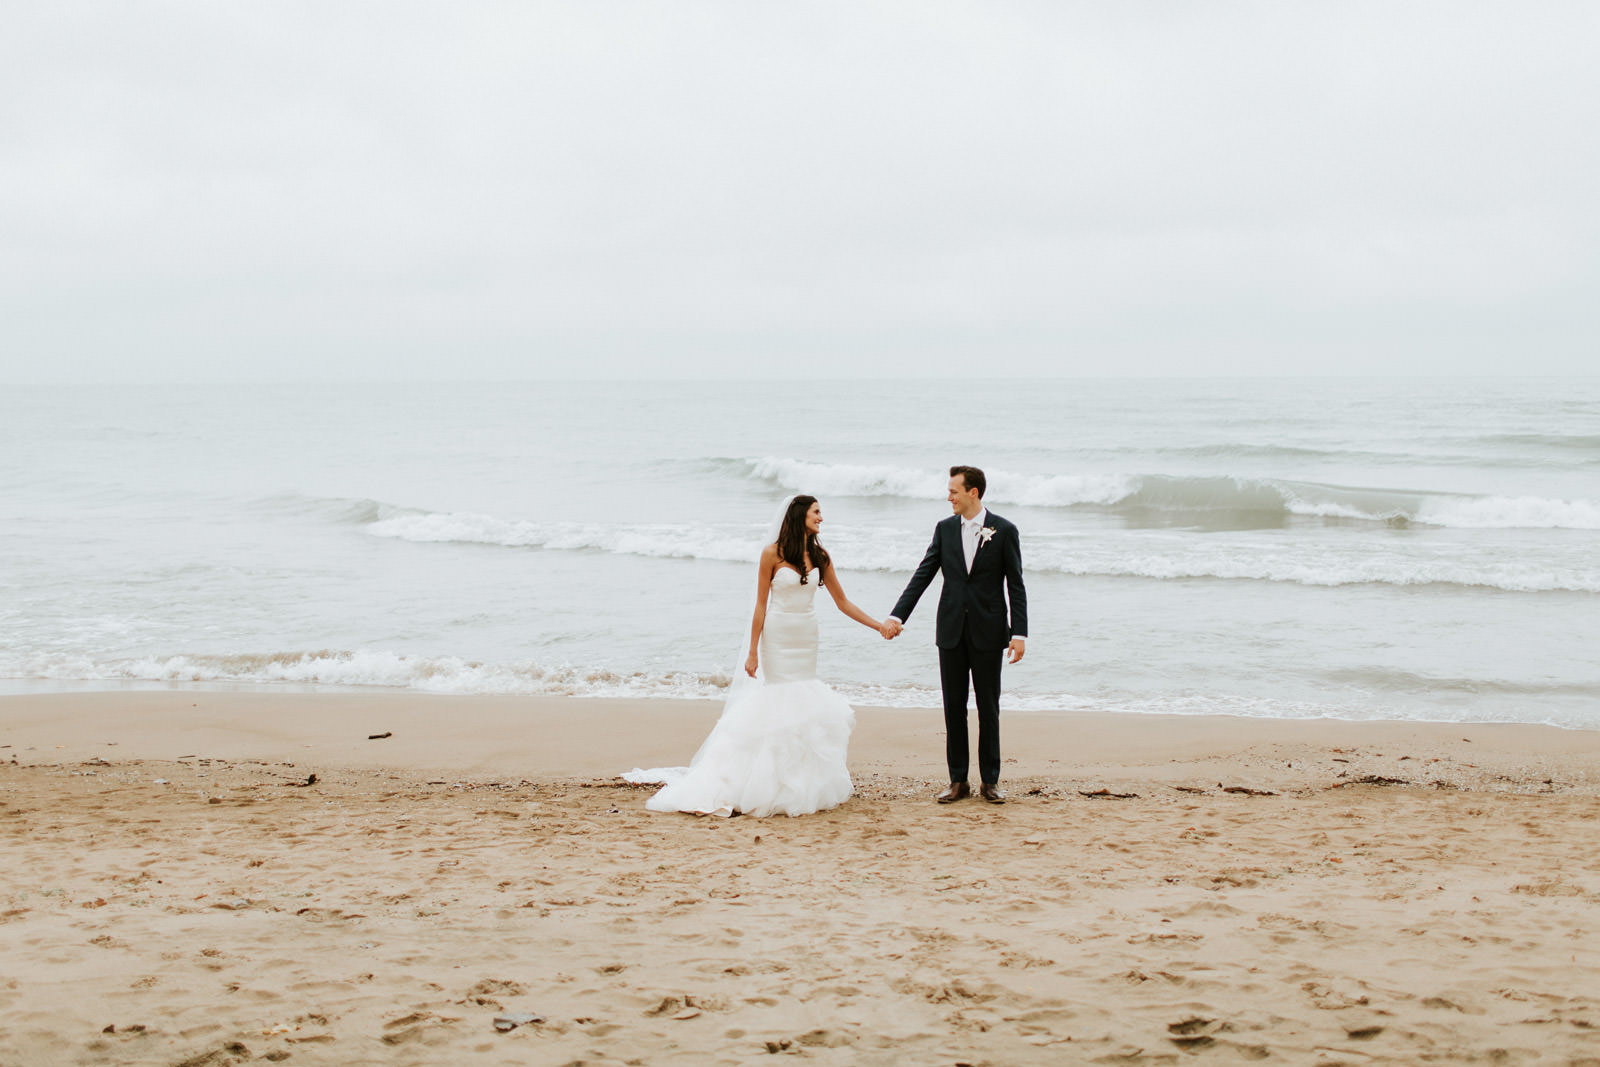 Bride and groom wedding image by lake Michigan in Evanston